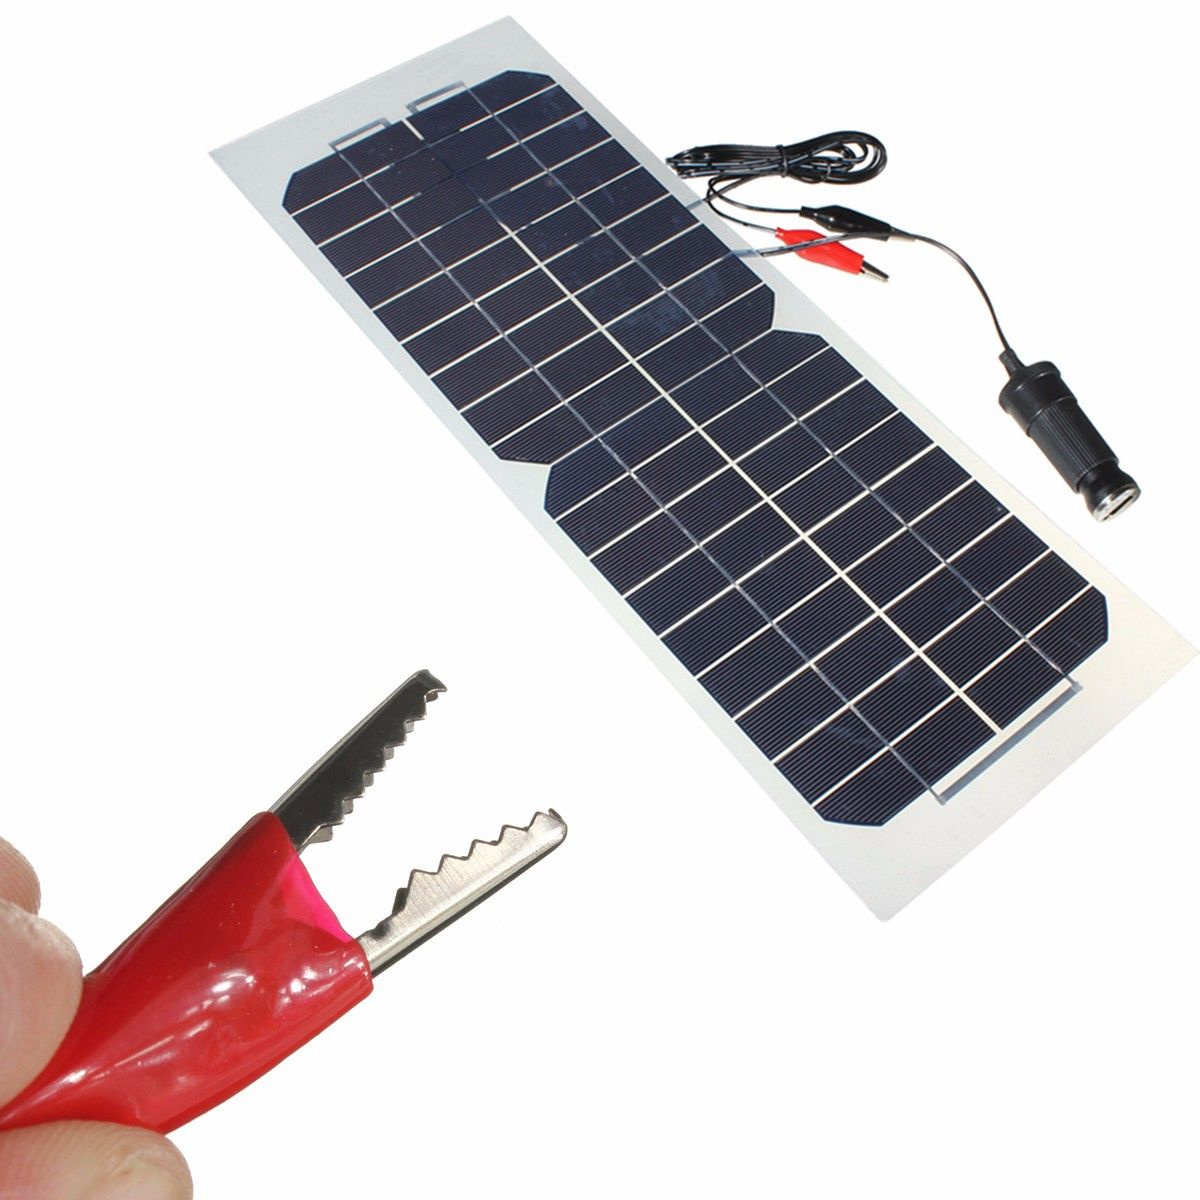 18v 10w 490x180mm Semi Flexible Monocrystalline Silicone Solar Panel Battery Charger Solar Kit Diy Solar Solar Panel Battery